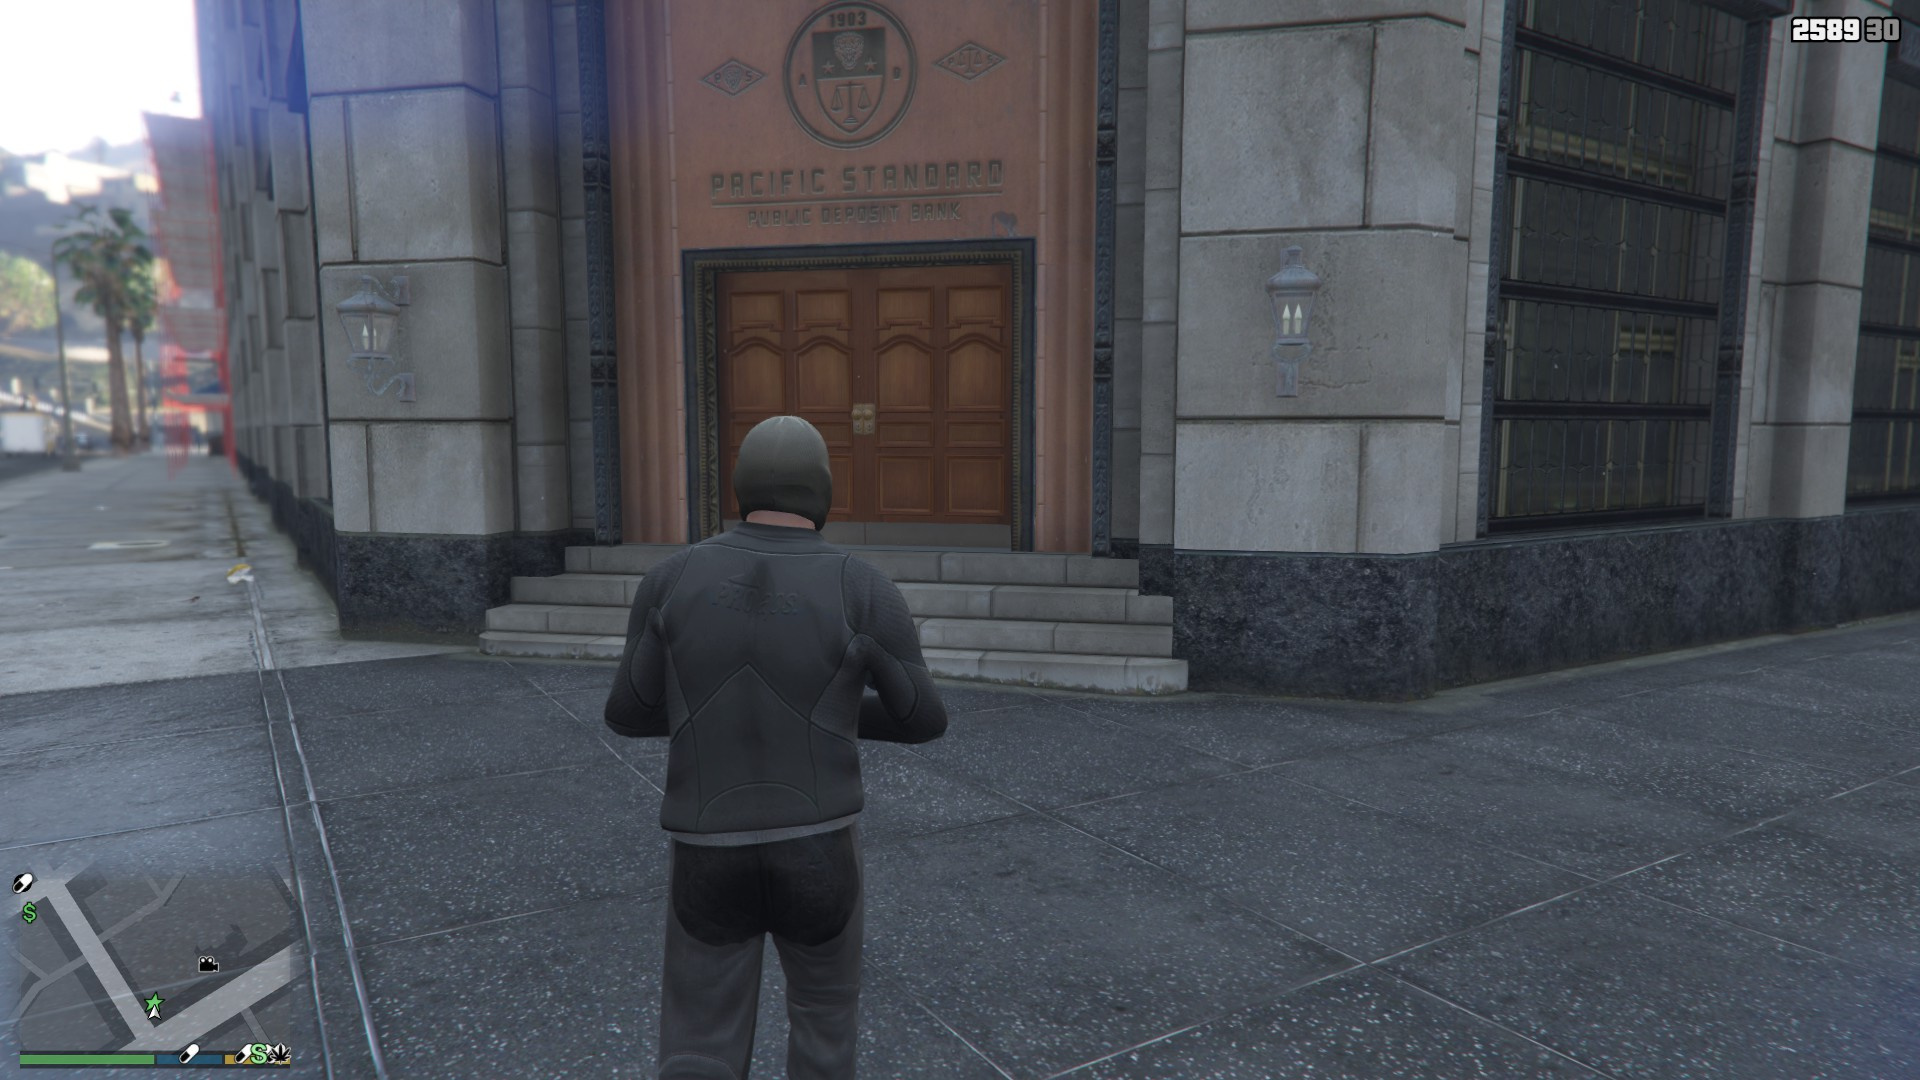 where is the deposit bank in gta 5